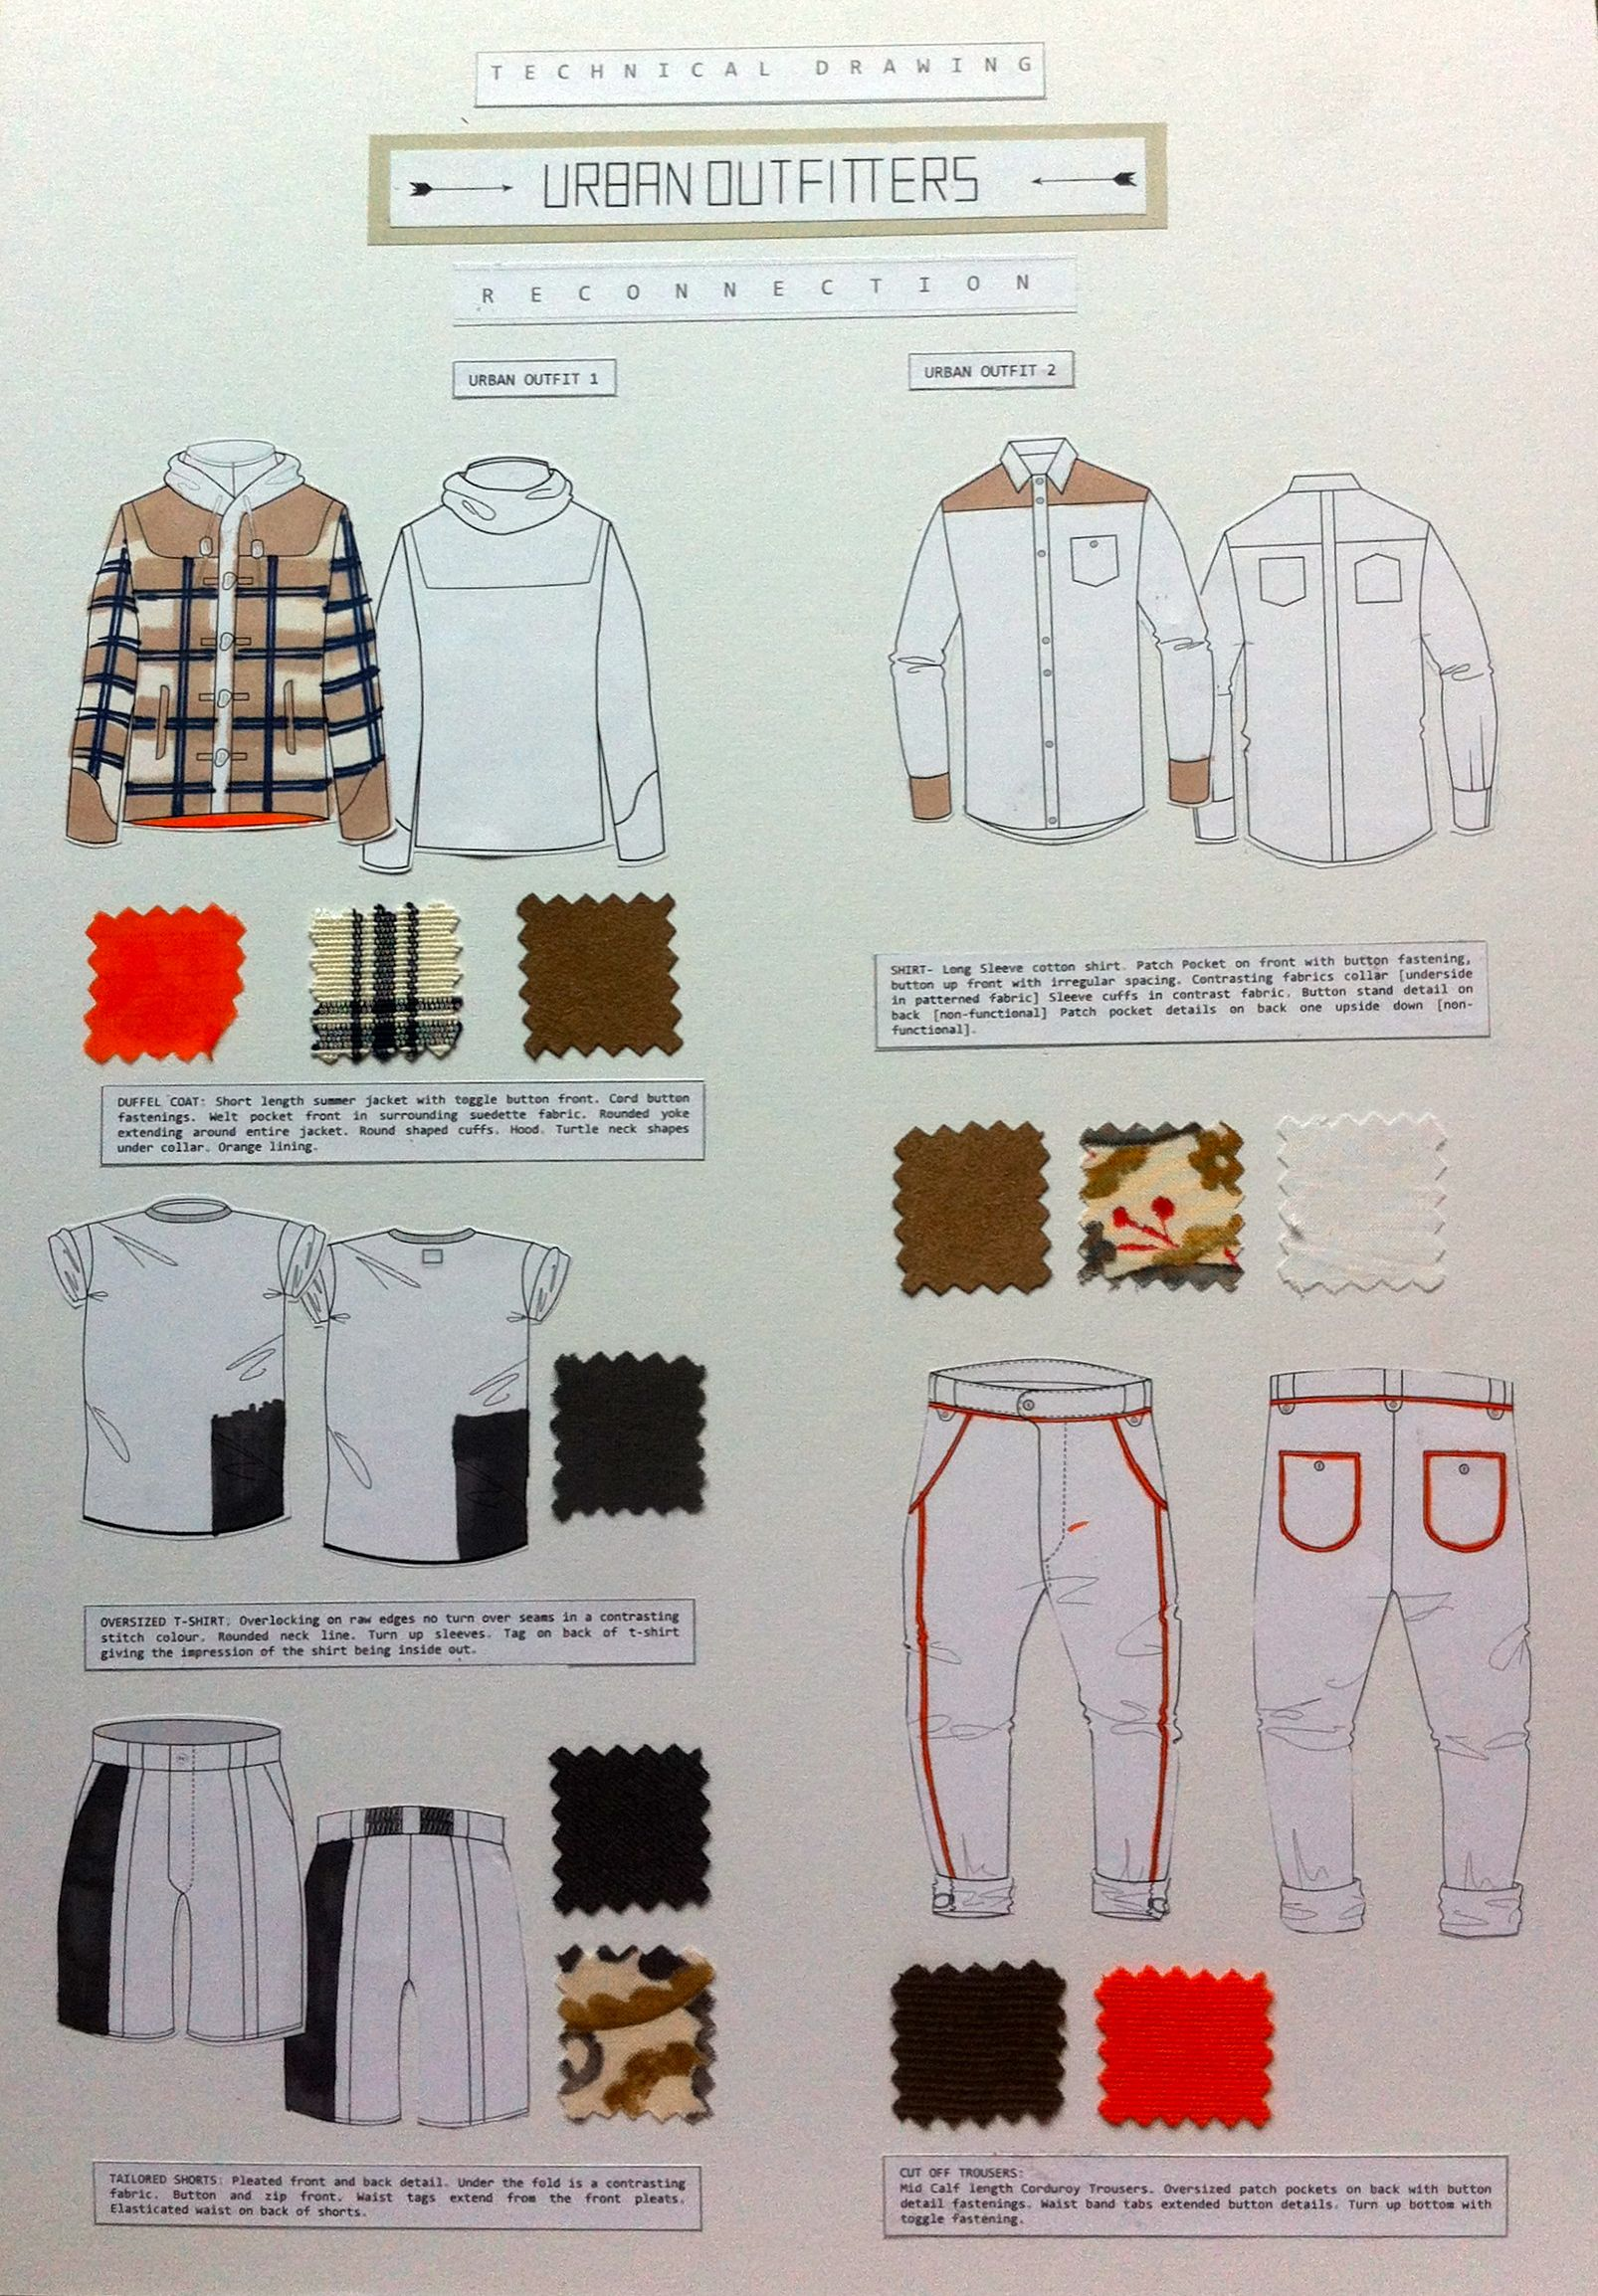 Final working drawings, including fabric swatches and